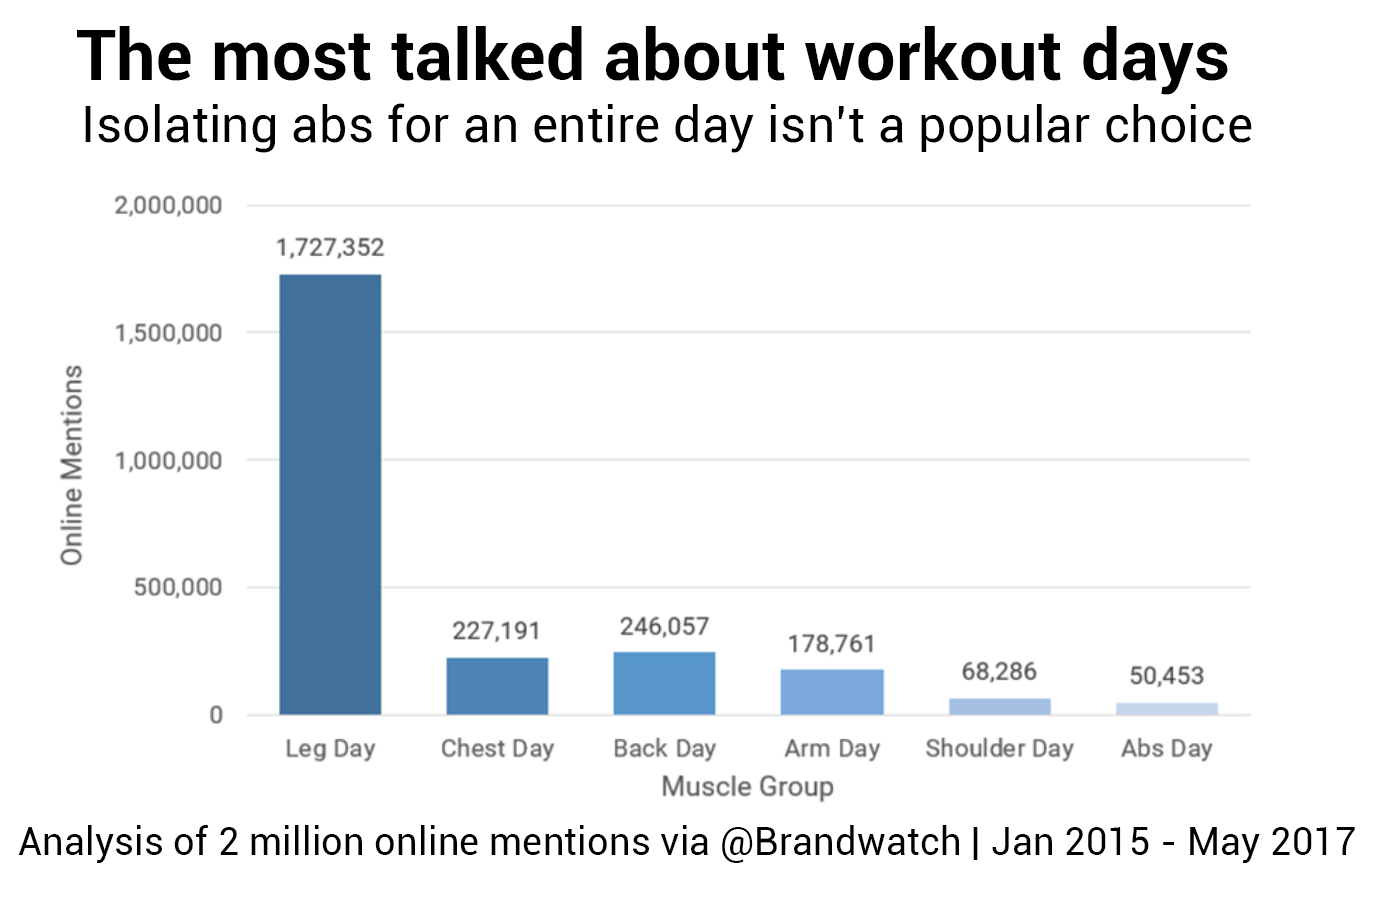 Bar chart showing that leg day is the most talked about workout day by a huge margin, followed by chest day, back day, arm day, shoulder day, and abs day